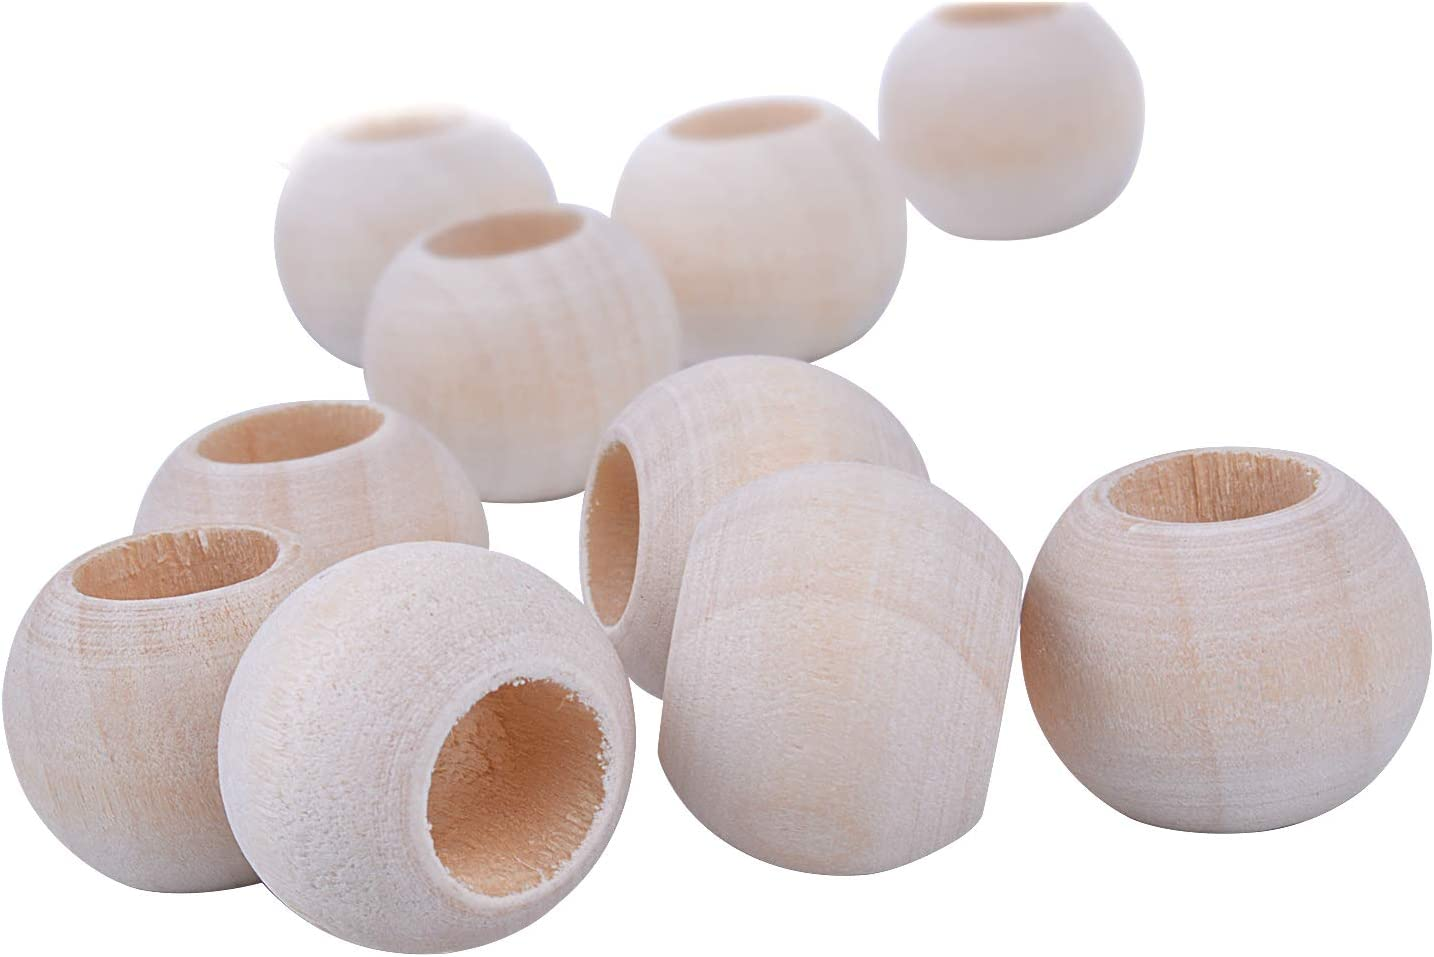 Natural Round Wood Loose Beads Wood Spacer 12mm Diameter x 5mm Hole Jdesun 200 Pieces Wooden Beads